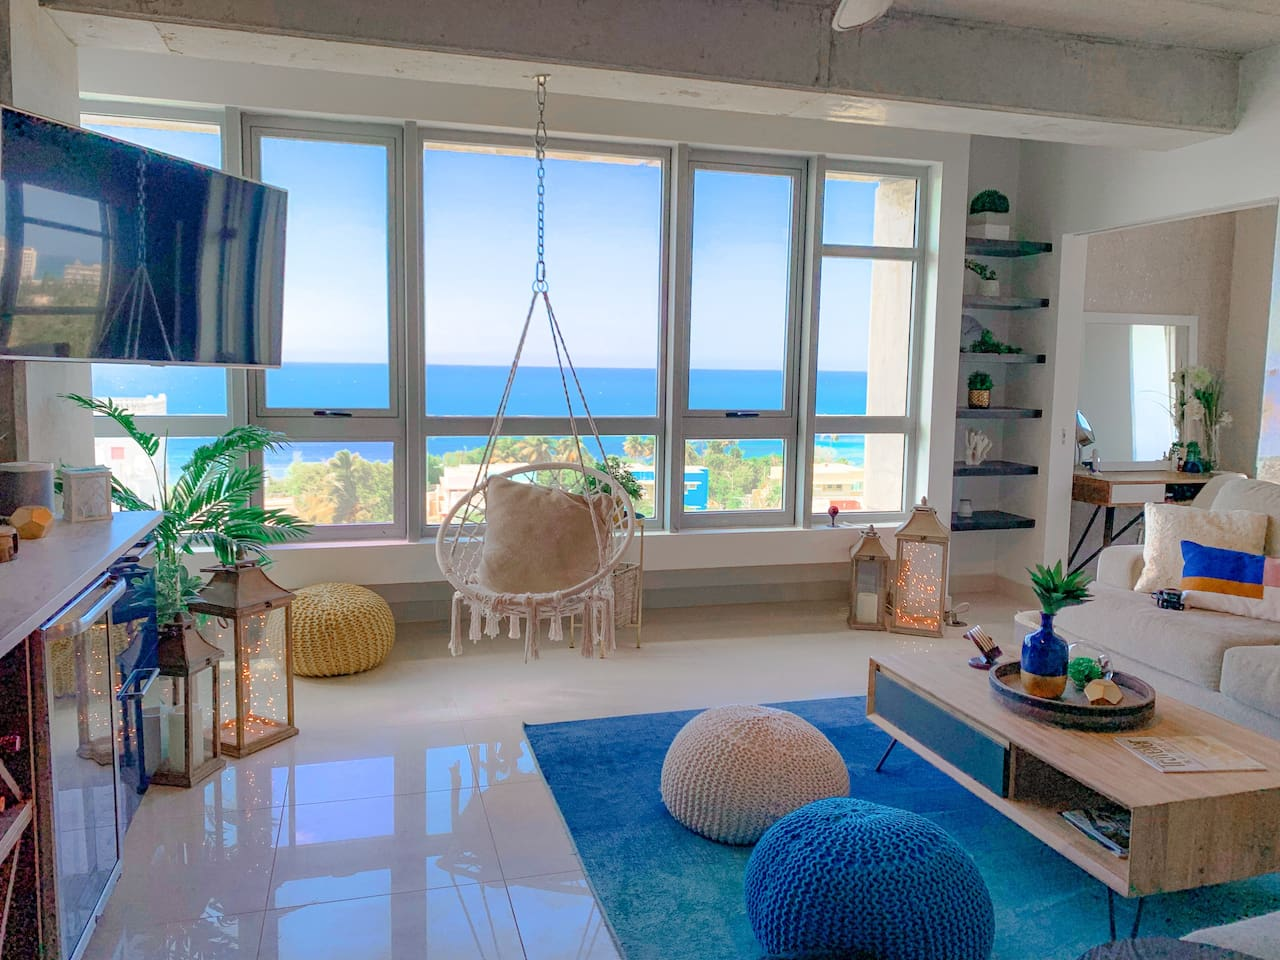 Ocean Views & Swing Chair